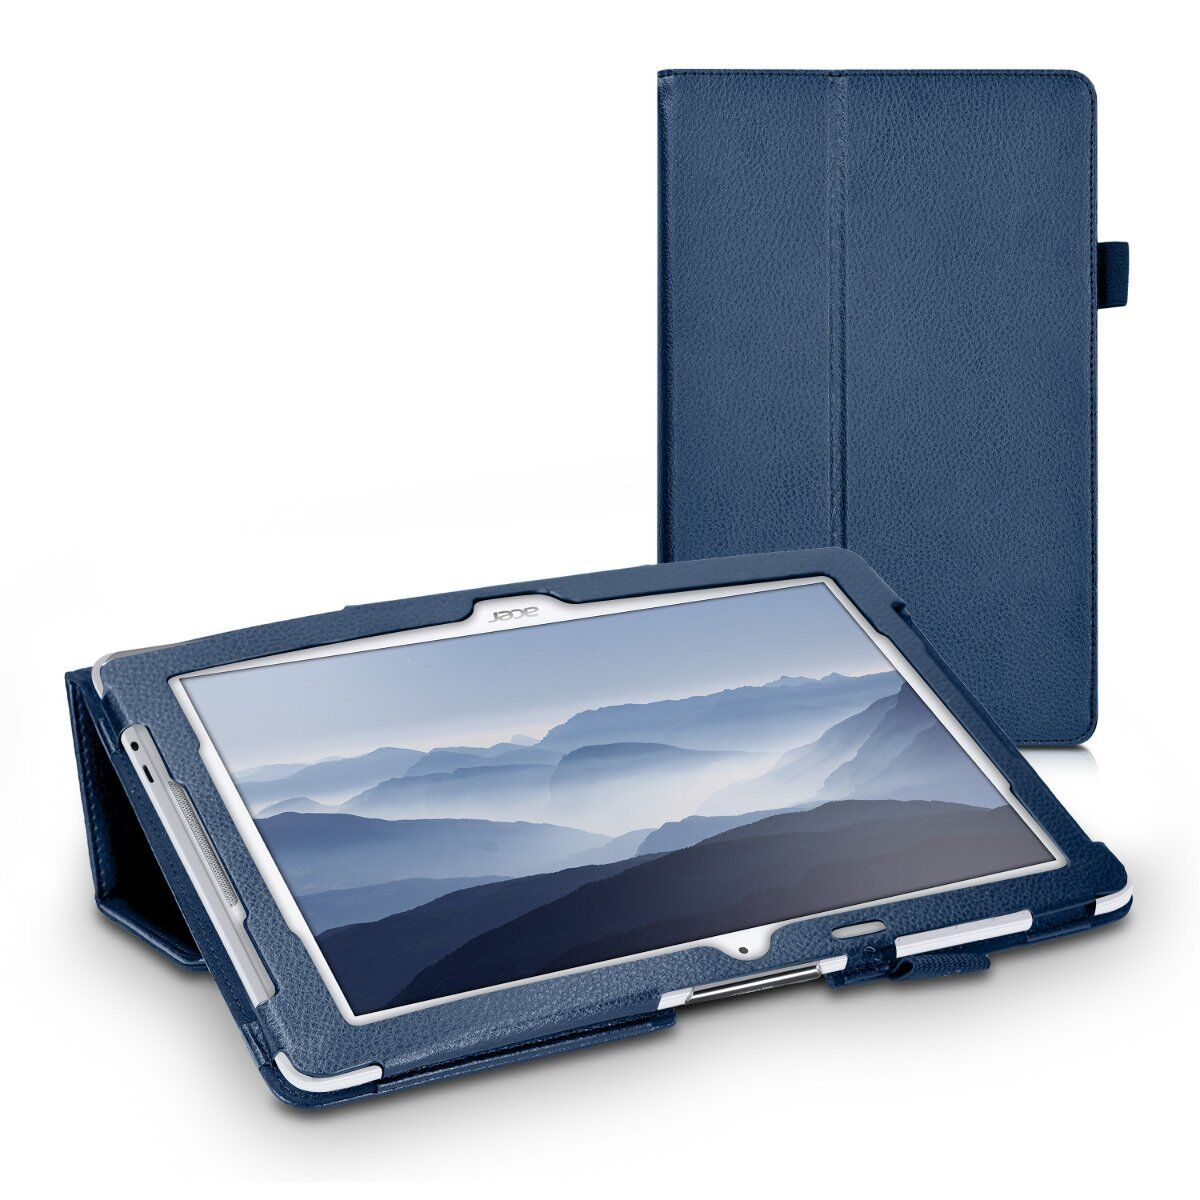 Image of Tablethutbox Slim Smart Case Cover For Acer Iconia One 10 B3-a30 / A3-a40 Tab